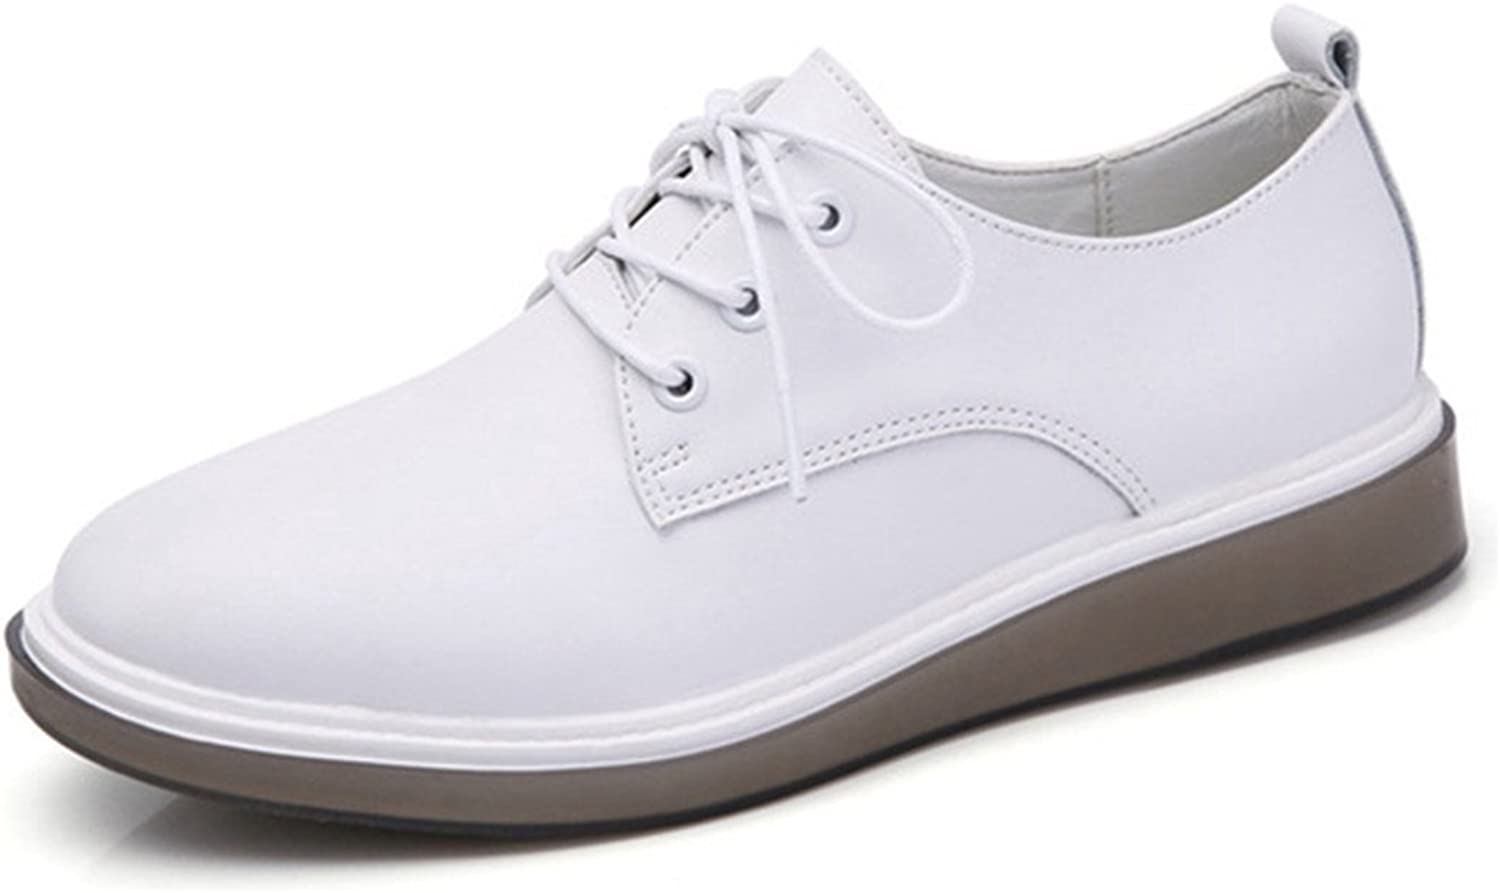 York Zhu White Black Oxford for Women, Ballerina Flats Lace up Round Toe Loafers shoes